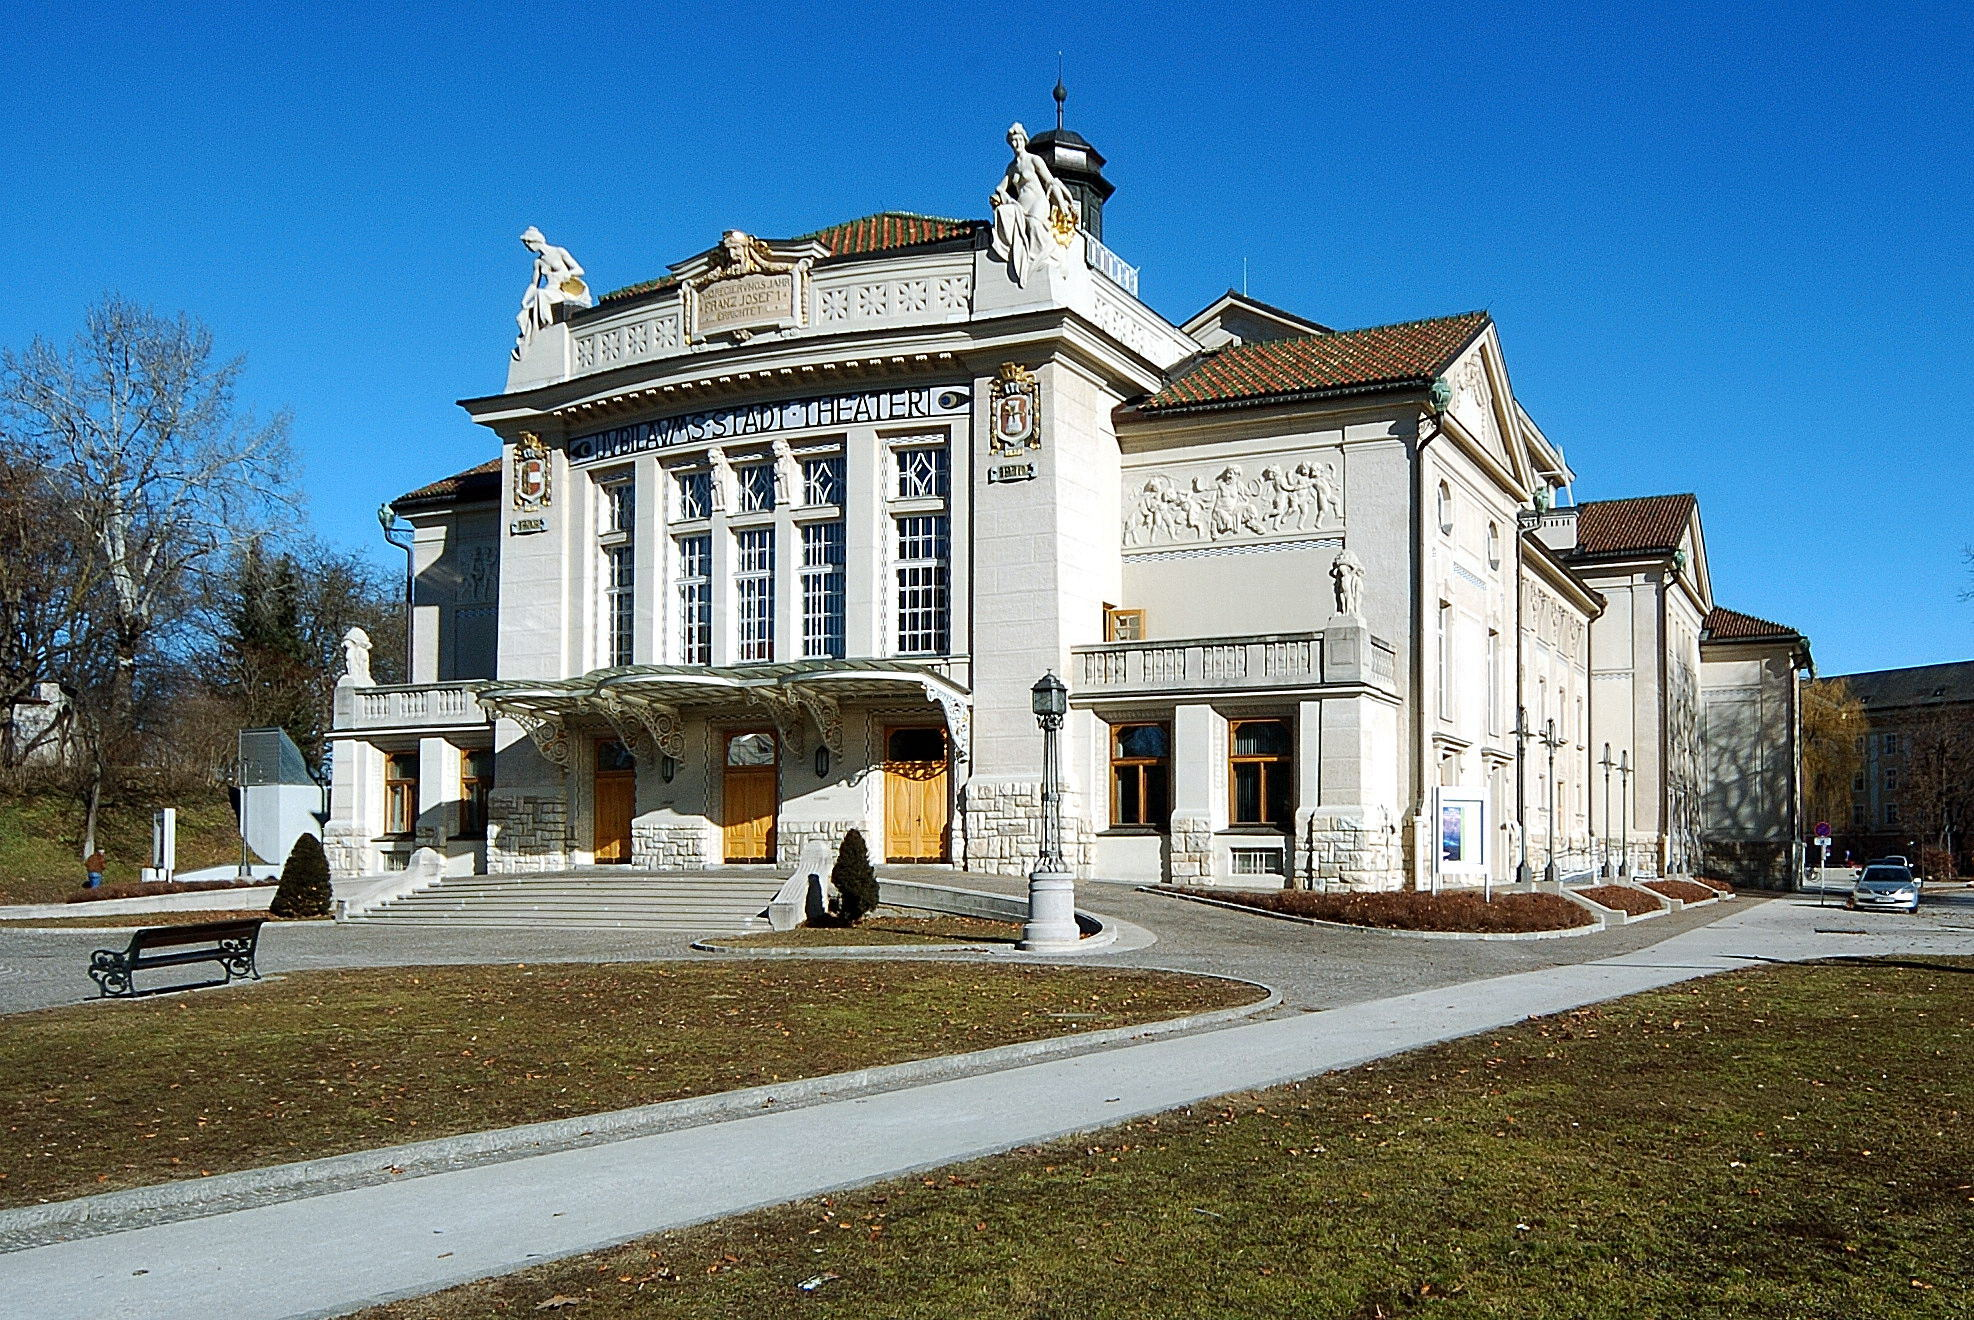 Jubiläums-Stadttheater © by Johann Jaritz